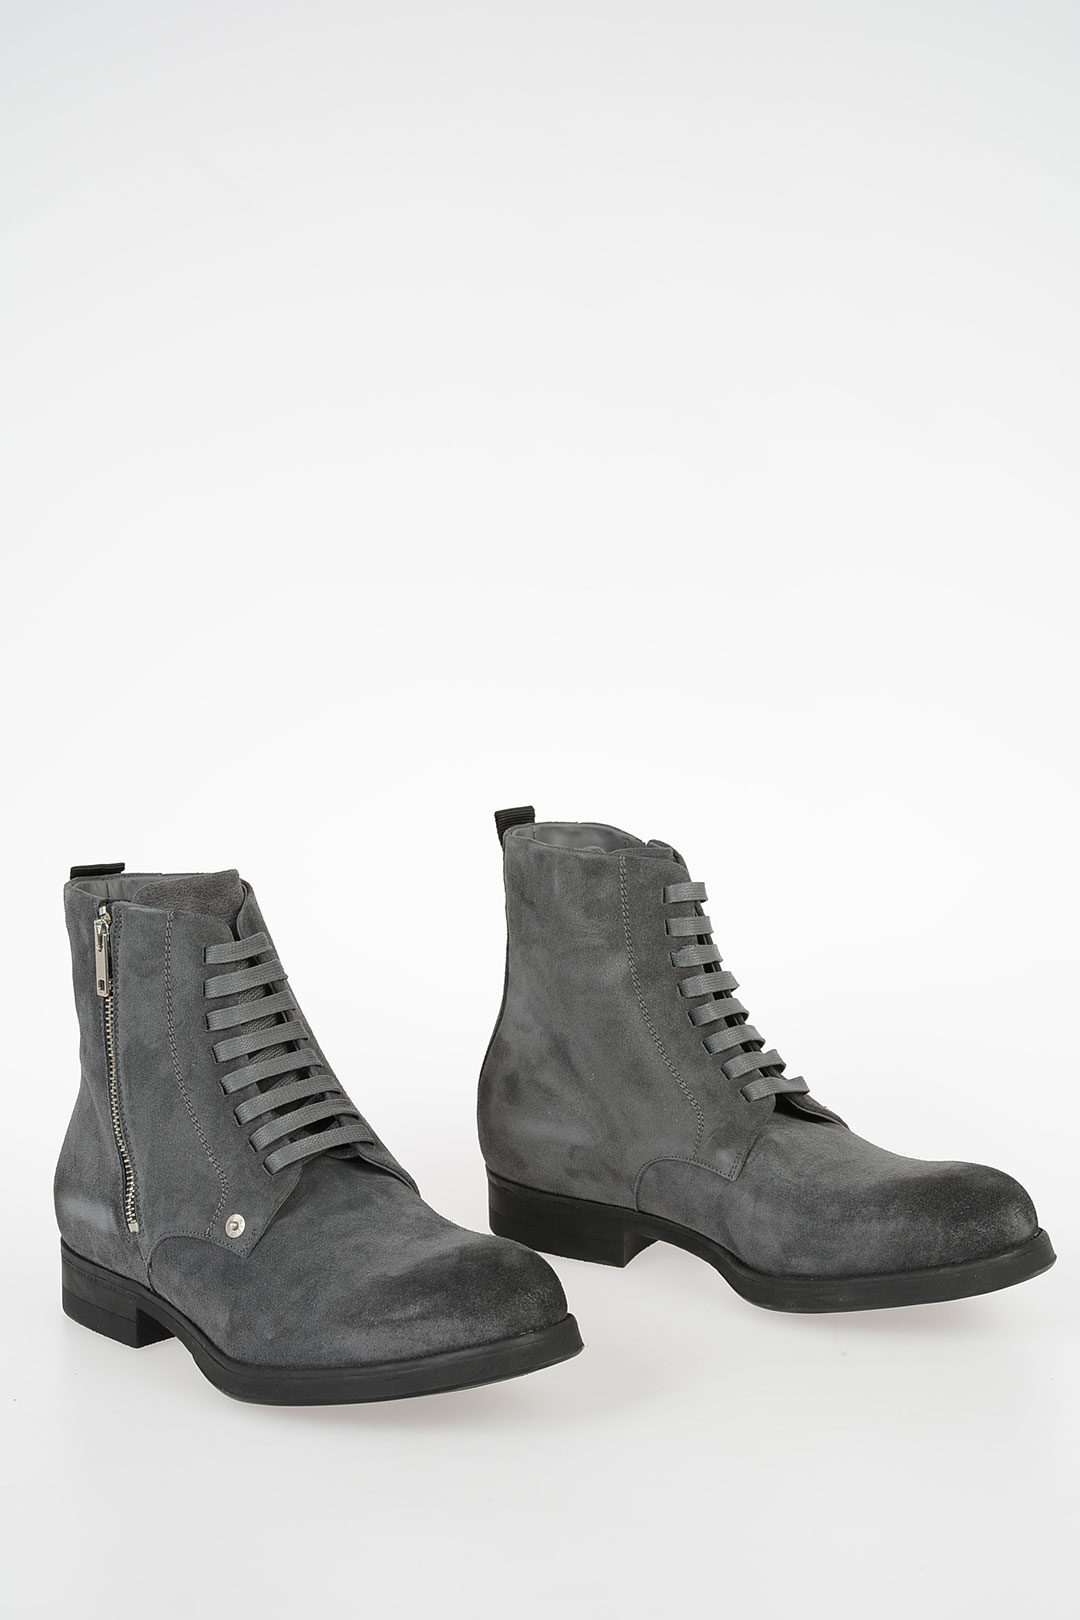 6b0816fef74 Leather VICIOUS Ankle Boots